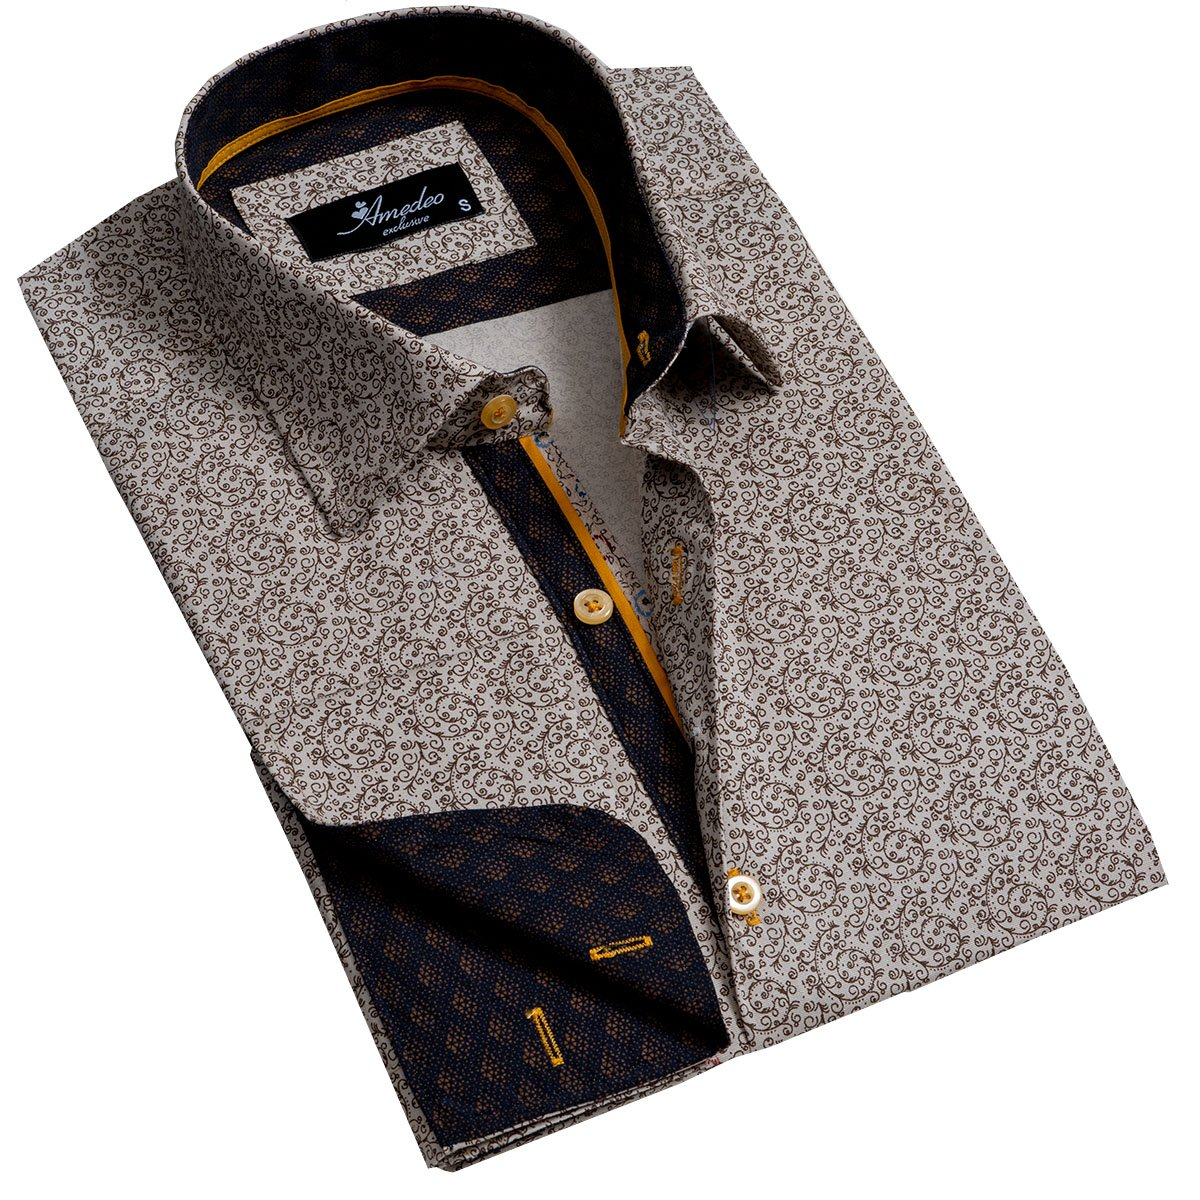 Tan Men's Reversible Dress Shirt, Button Down Slim Fit with French Cuff Casual and Formal - Amedeo Exclusive